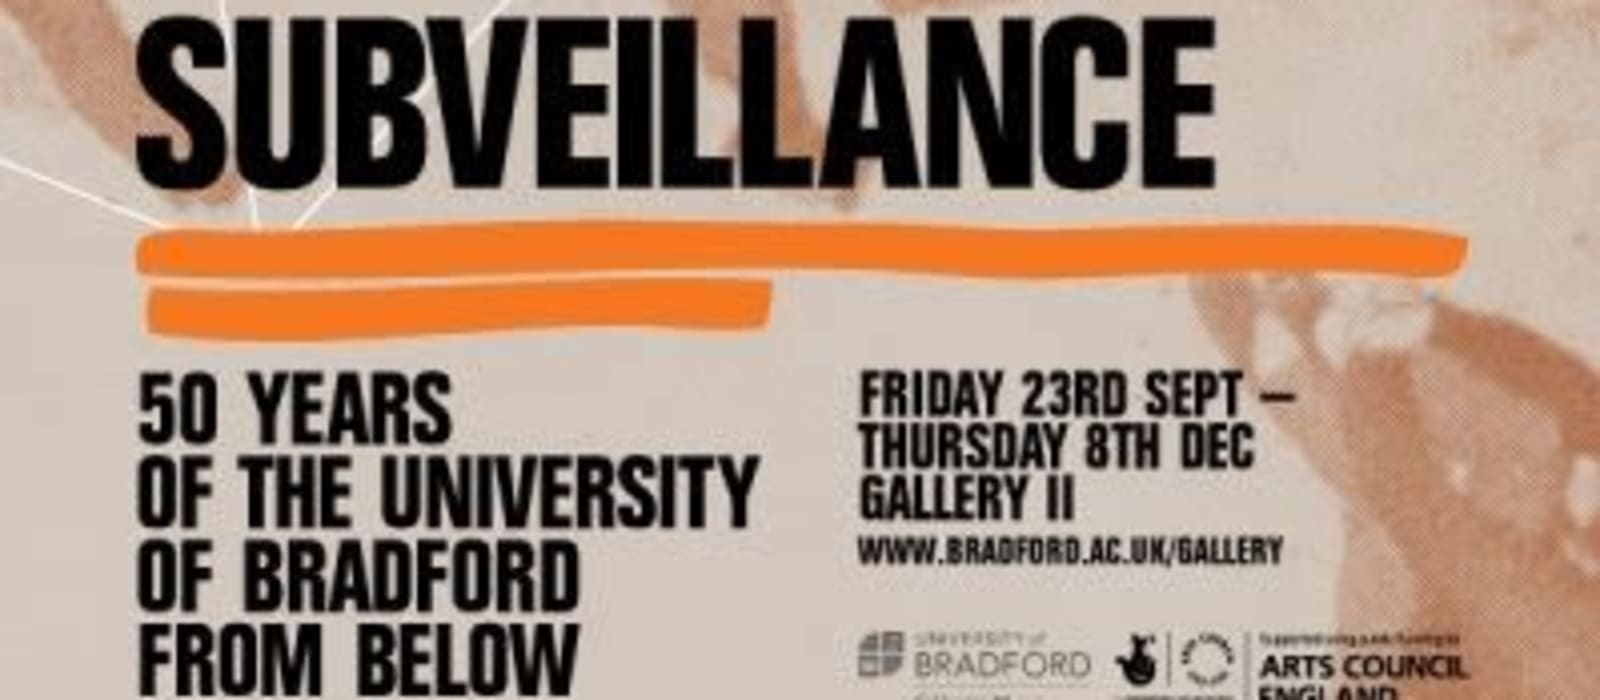 'Subveillance: 50 years of the University of Bradford from below'